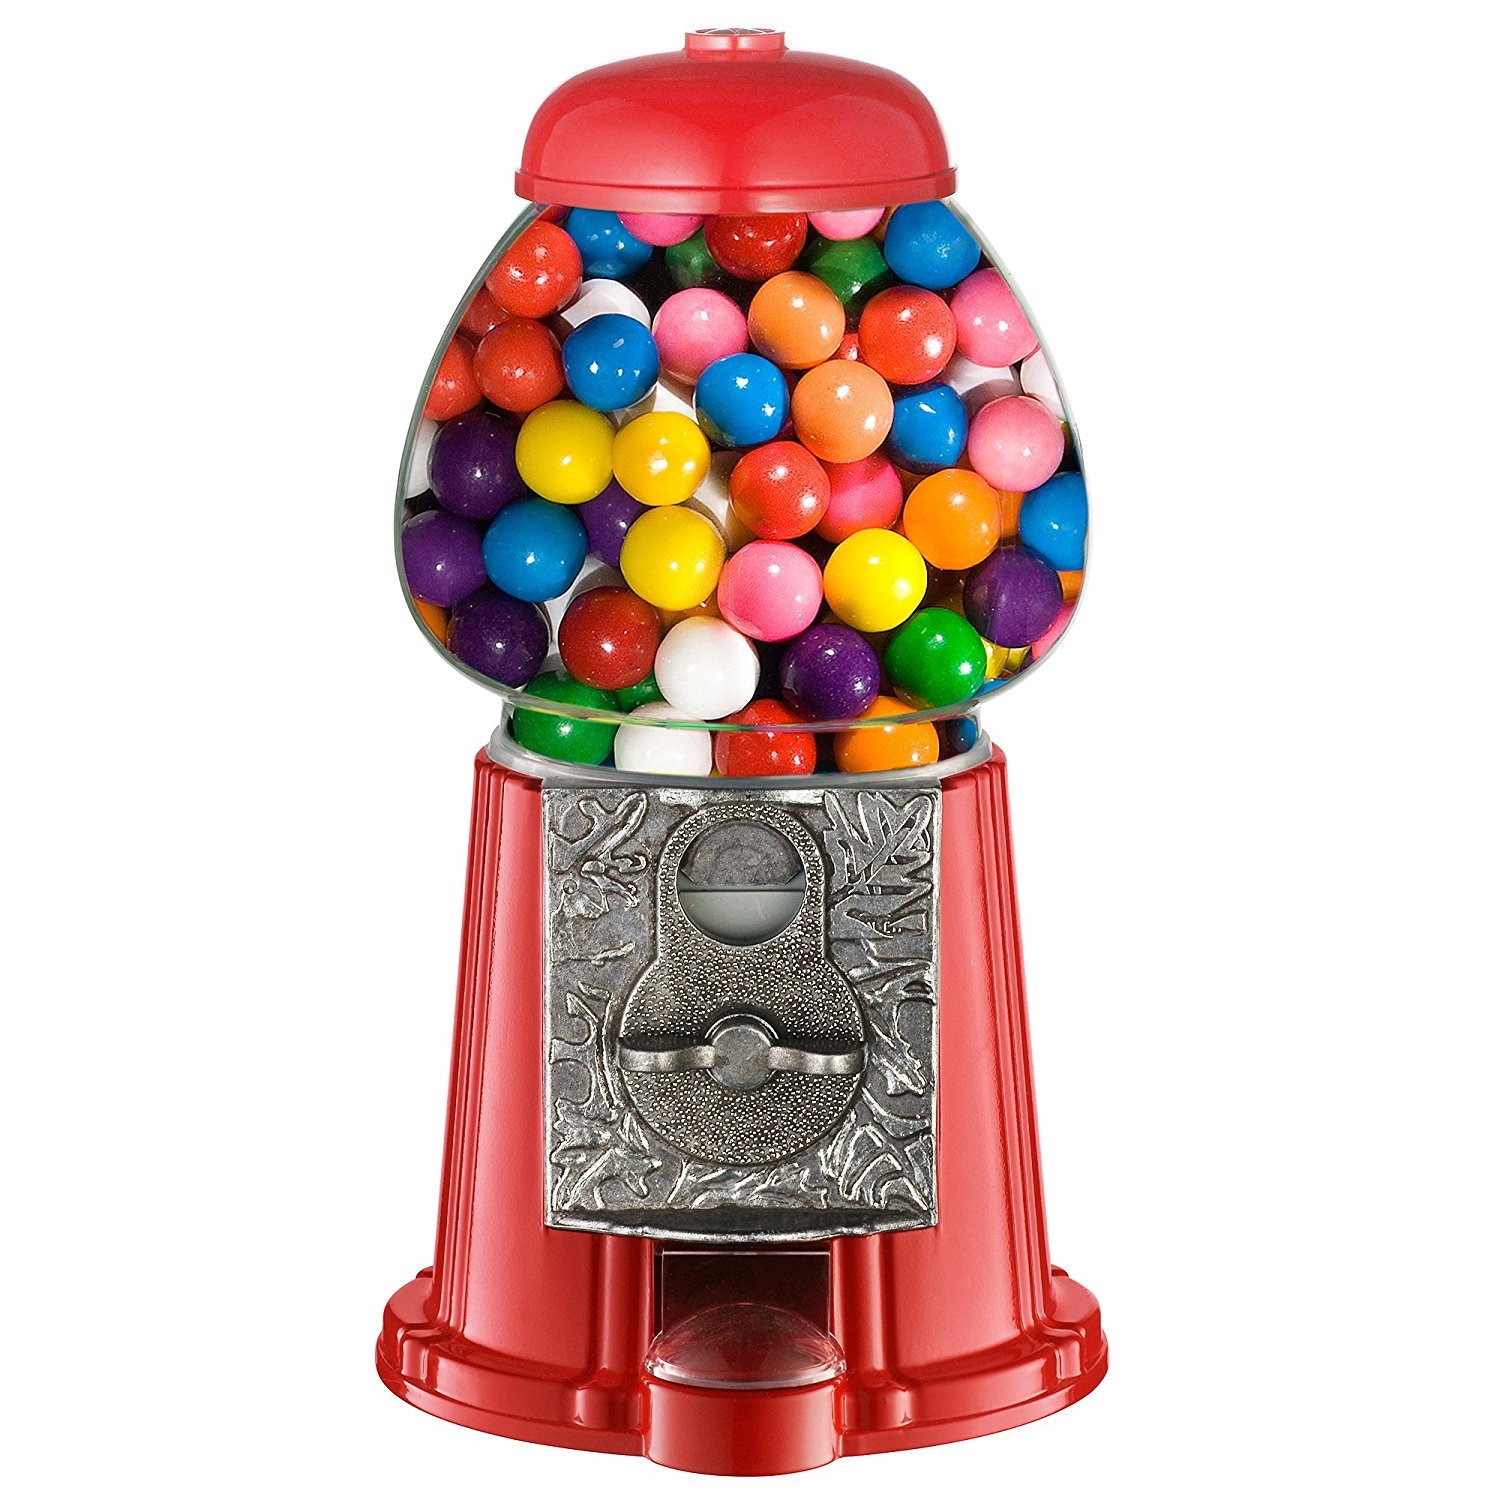 Gumball Machine Pictures | Free download on ClipArtMag